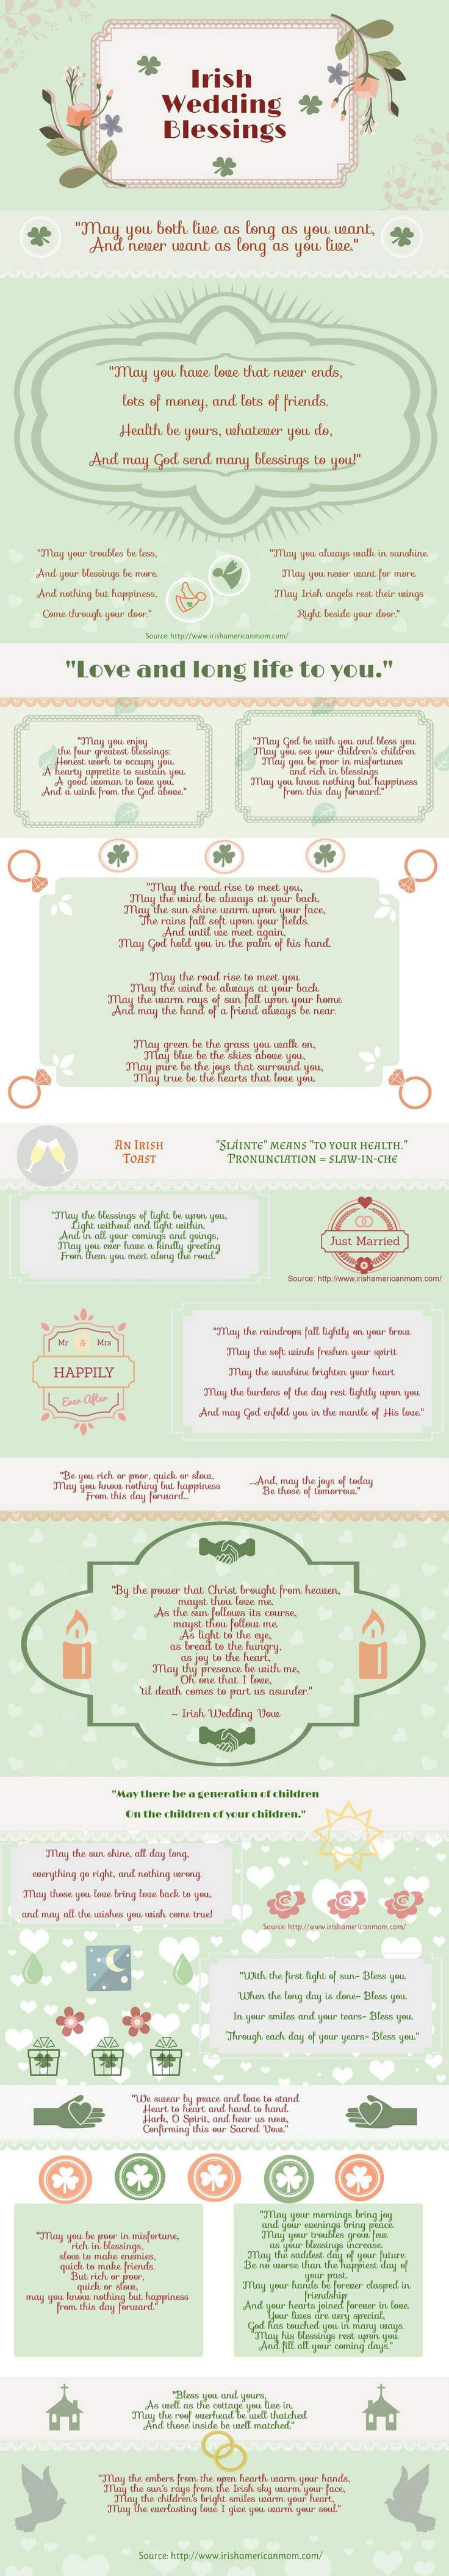 Irish Wedding Blessing Infographic by Irish American Mom